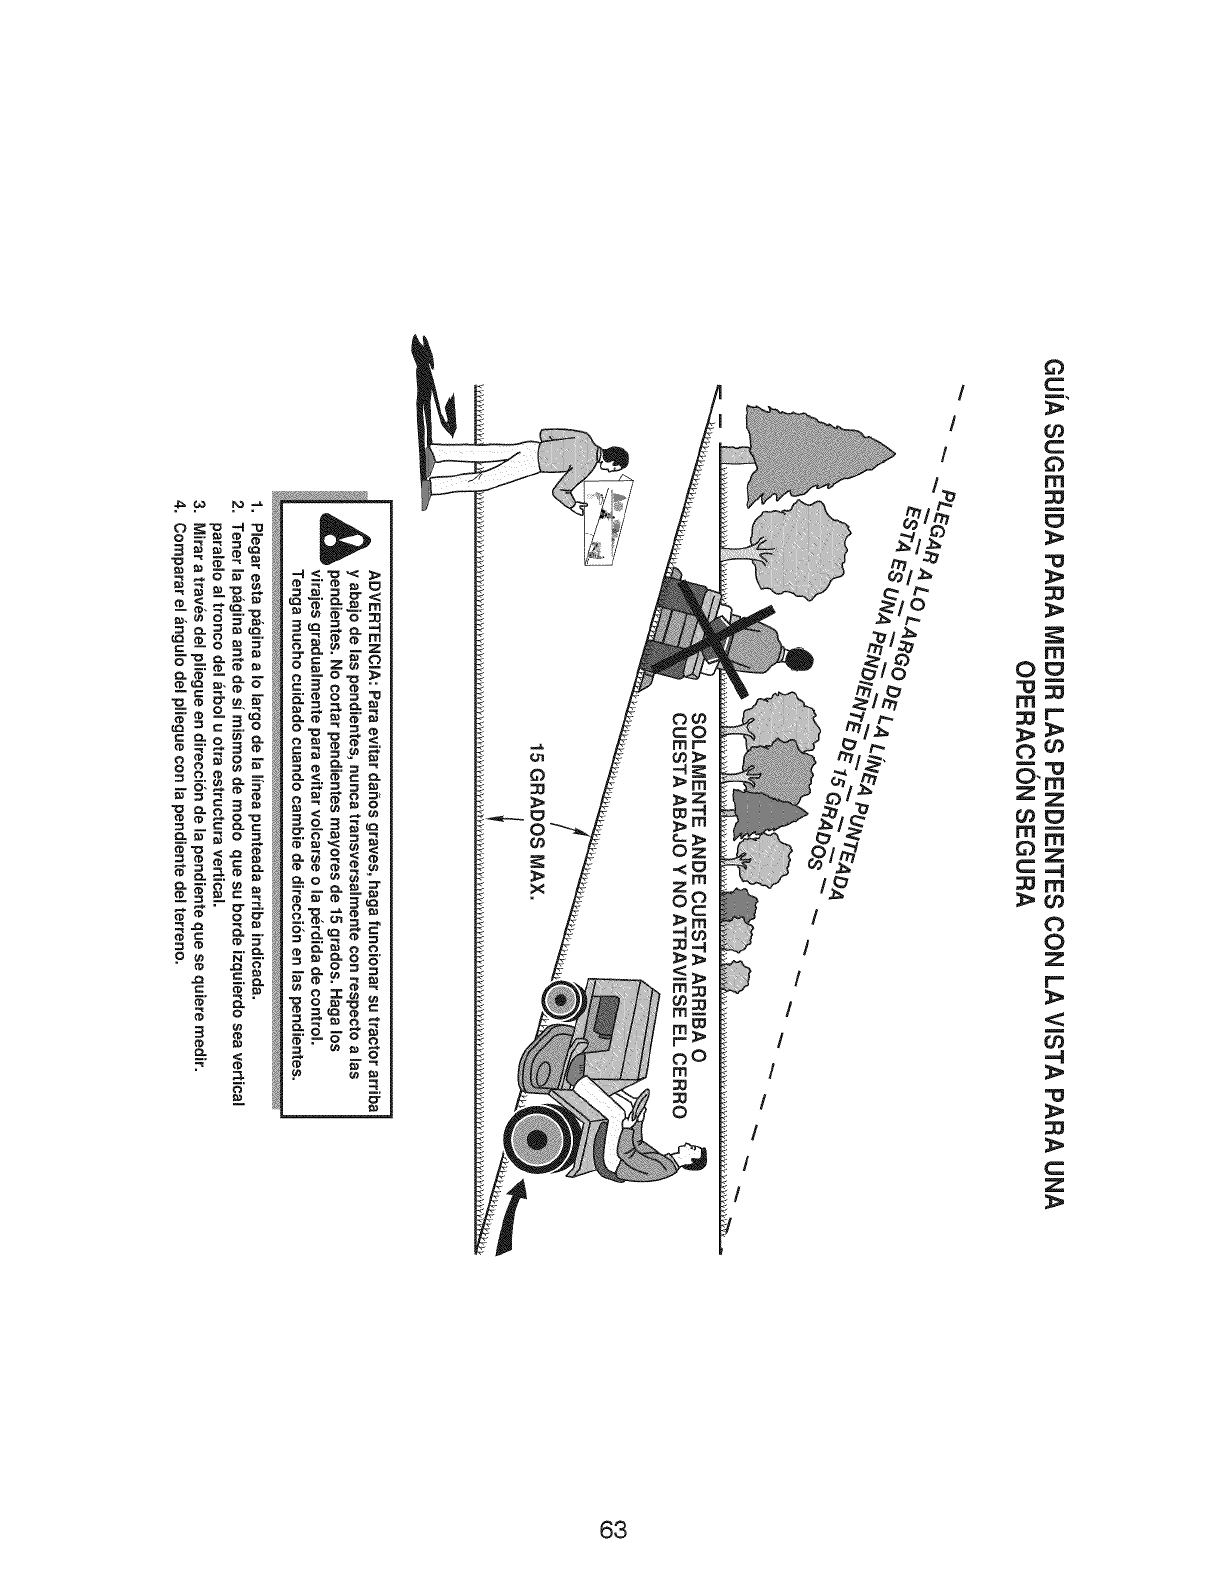 Page 63 of Craftsman Lawn Mower YT 3000 User Guide